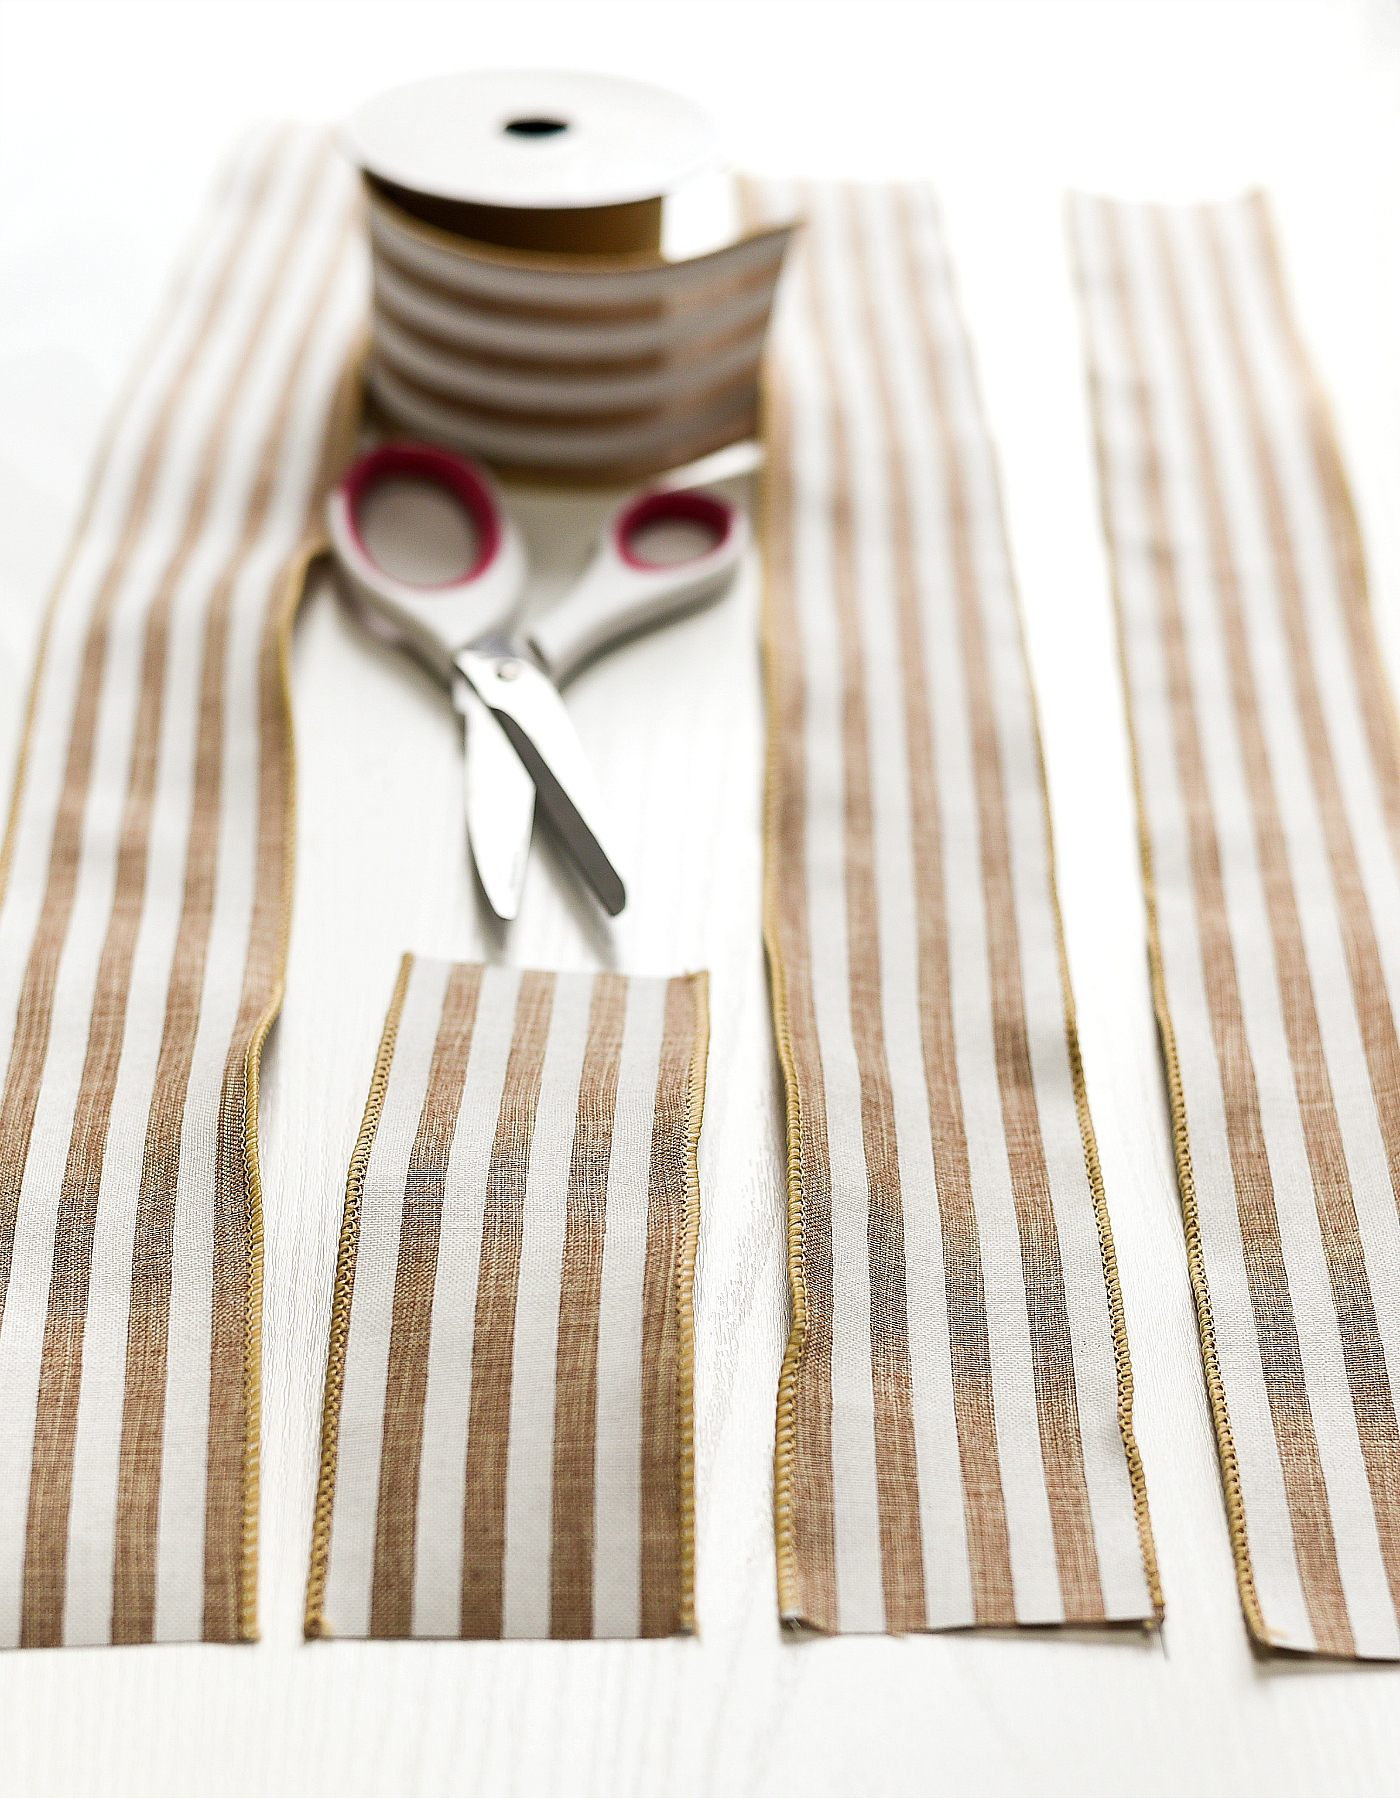 Burlap White Striped Ribbon - Wired Burlap Ribbon